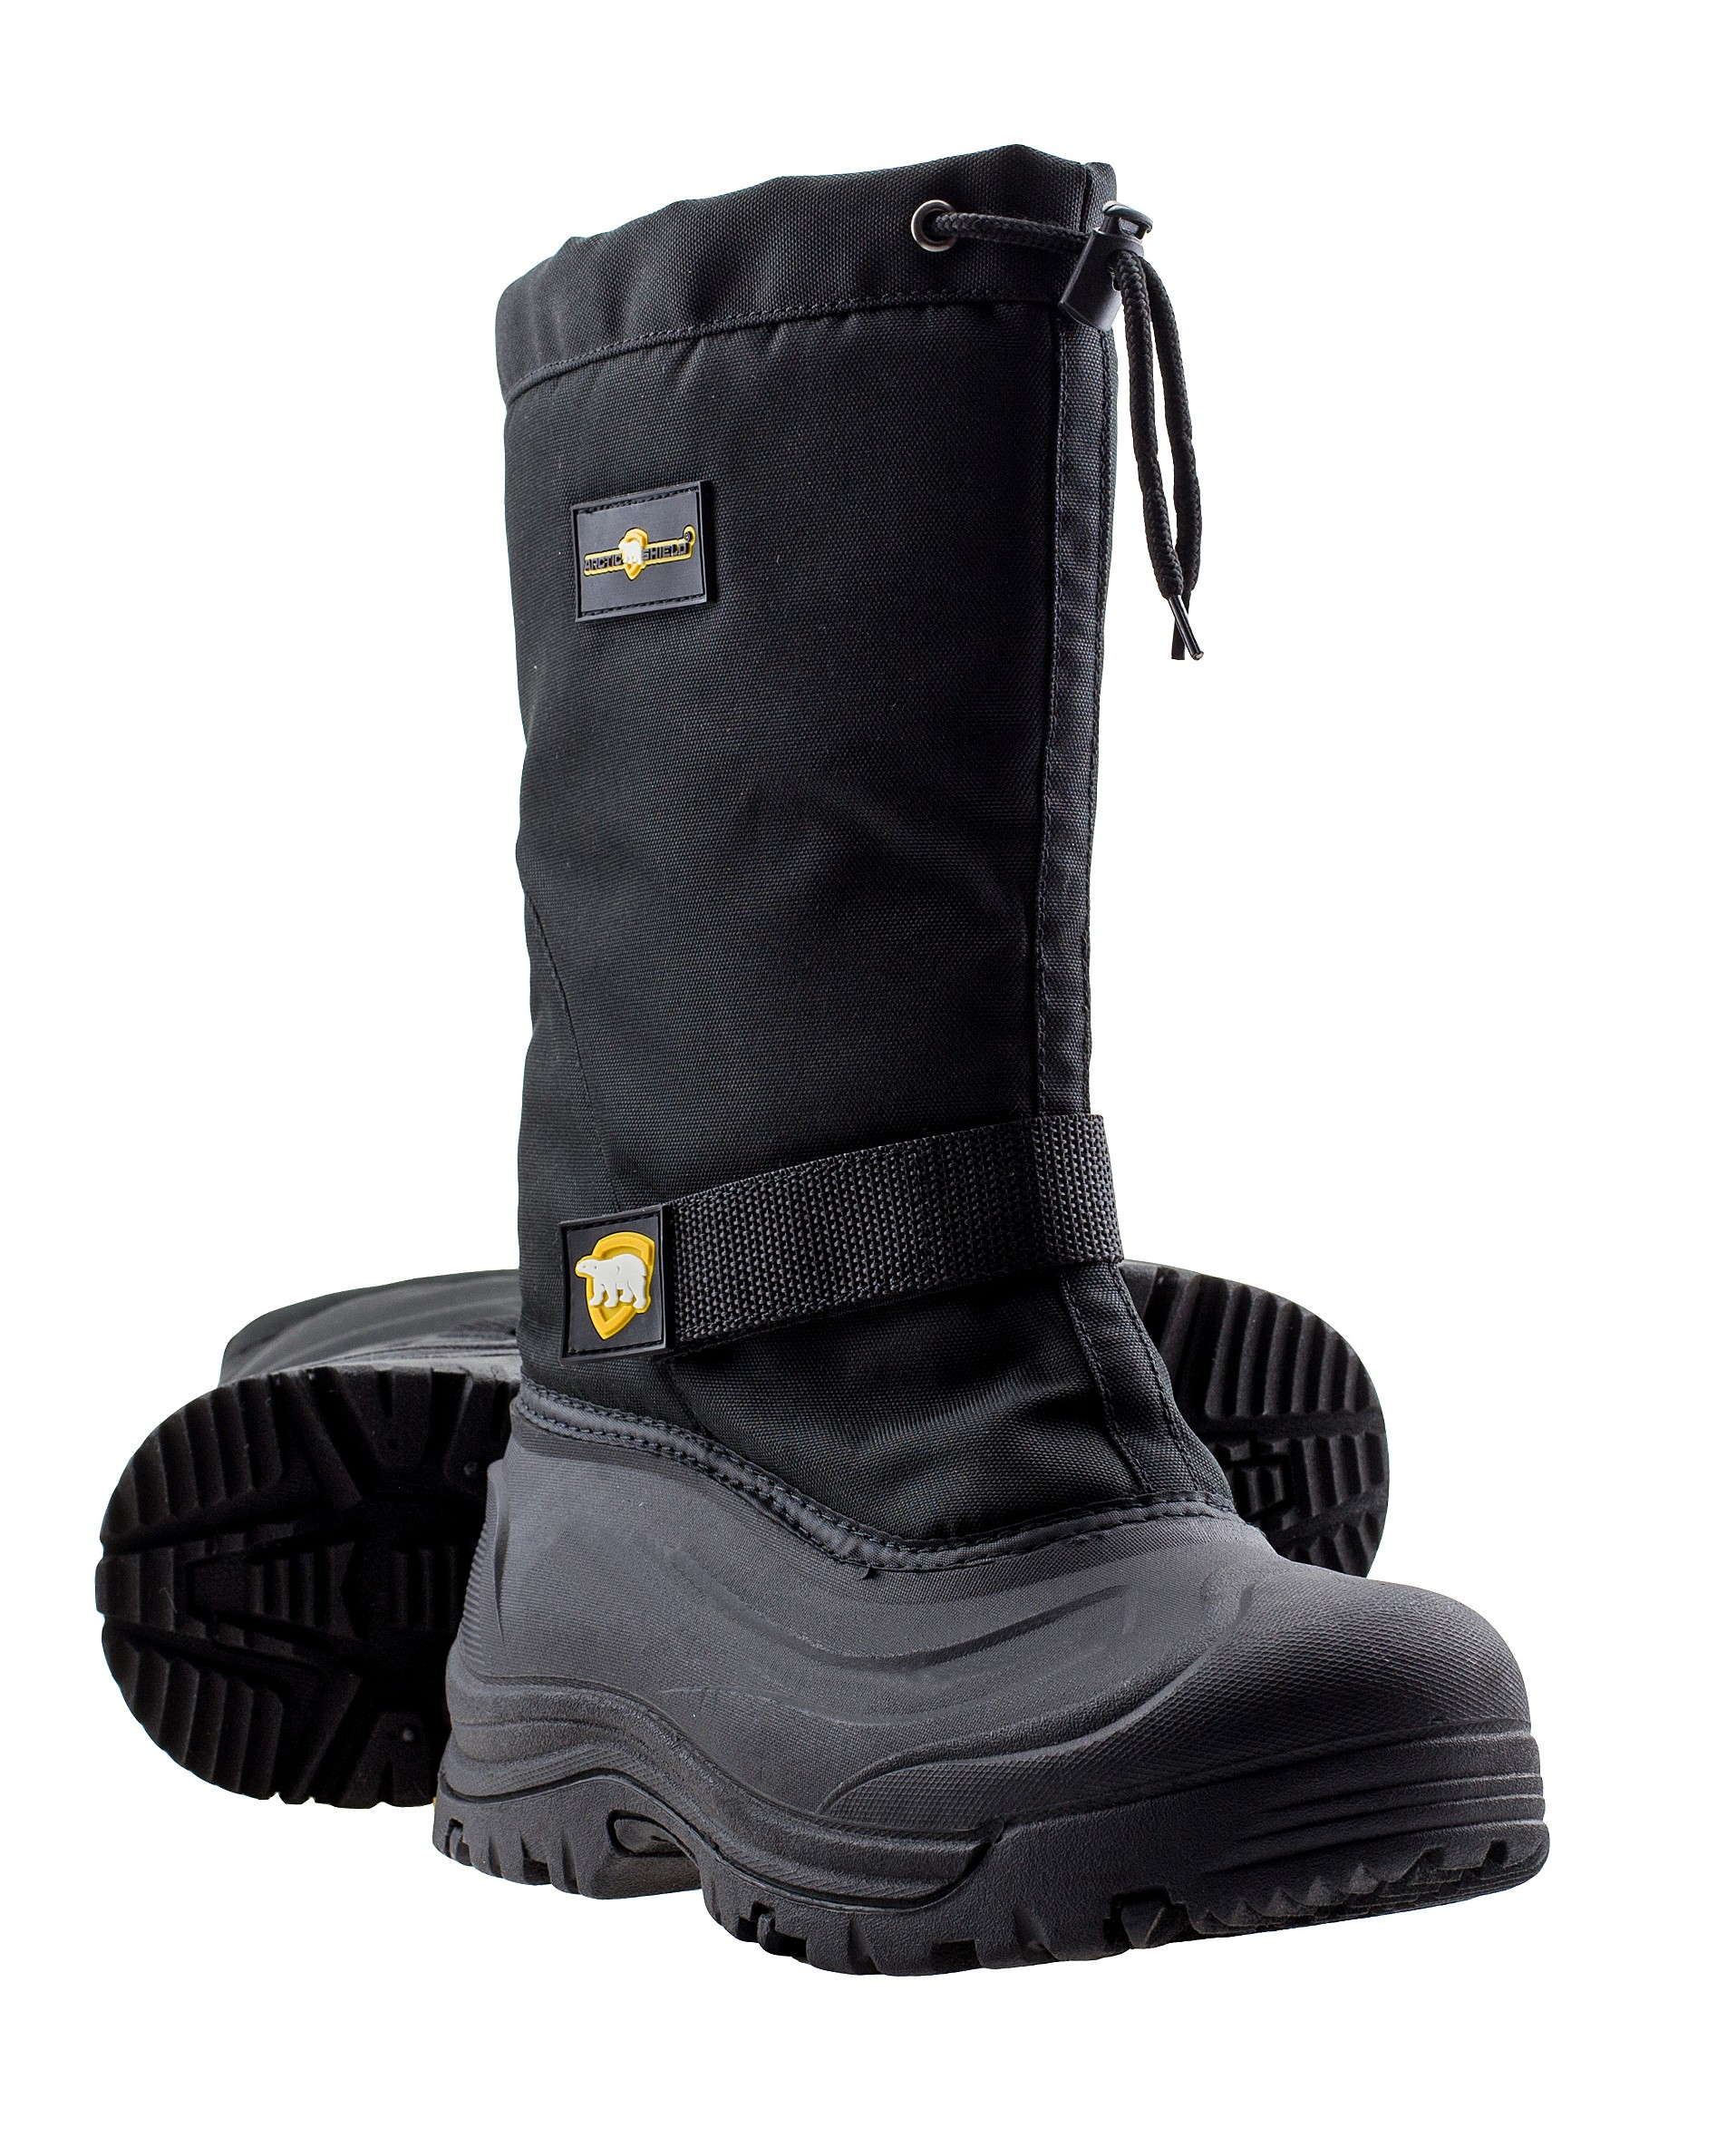 ArcticShield Mens Cold Weather Waterproof Durable Insulated Tall Winter Snow Boots Men\u0027s